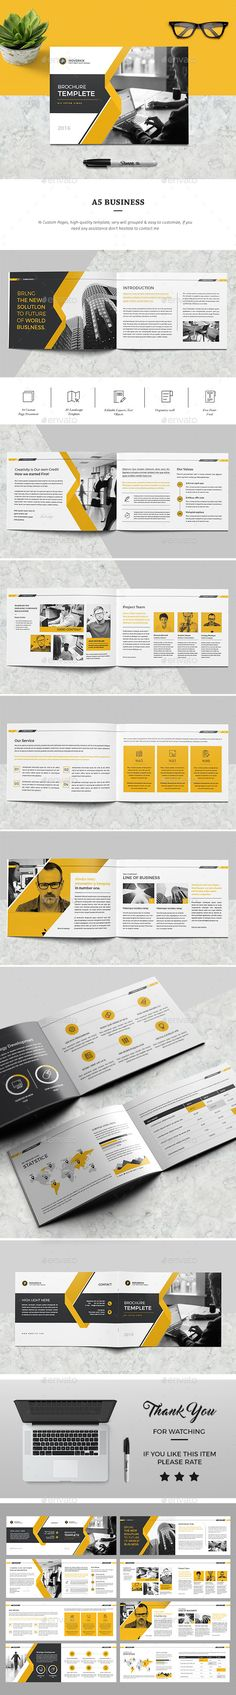 Brochure — InDesign INDD #business #brief • Download ➝ https://graphicriver.net/item/brochure/19499537?ref=pxcr